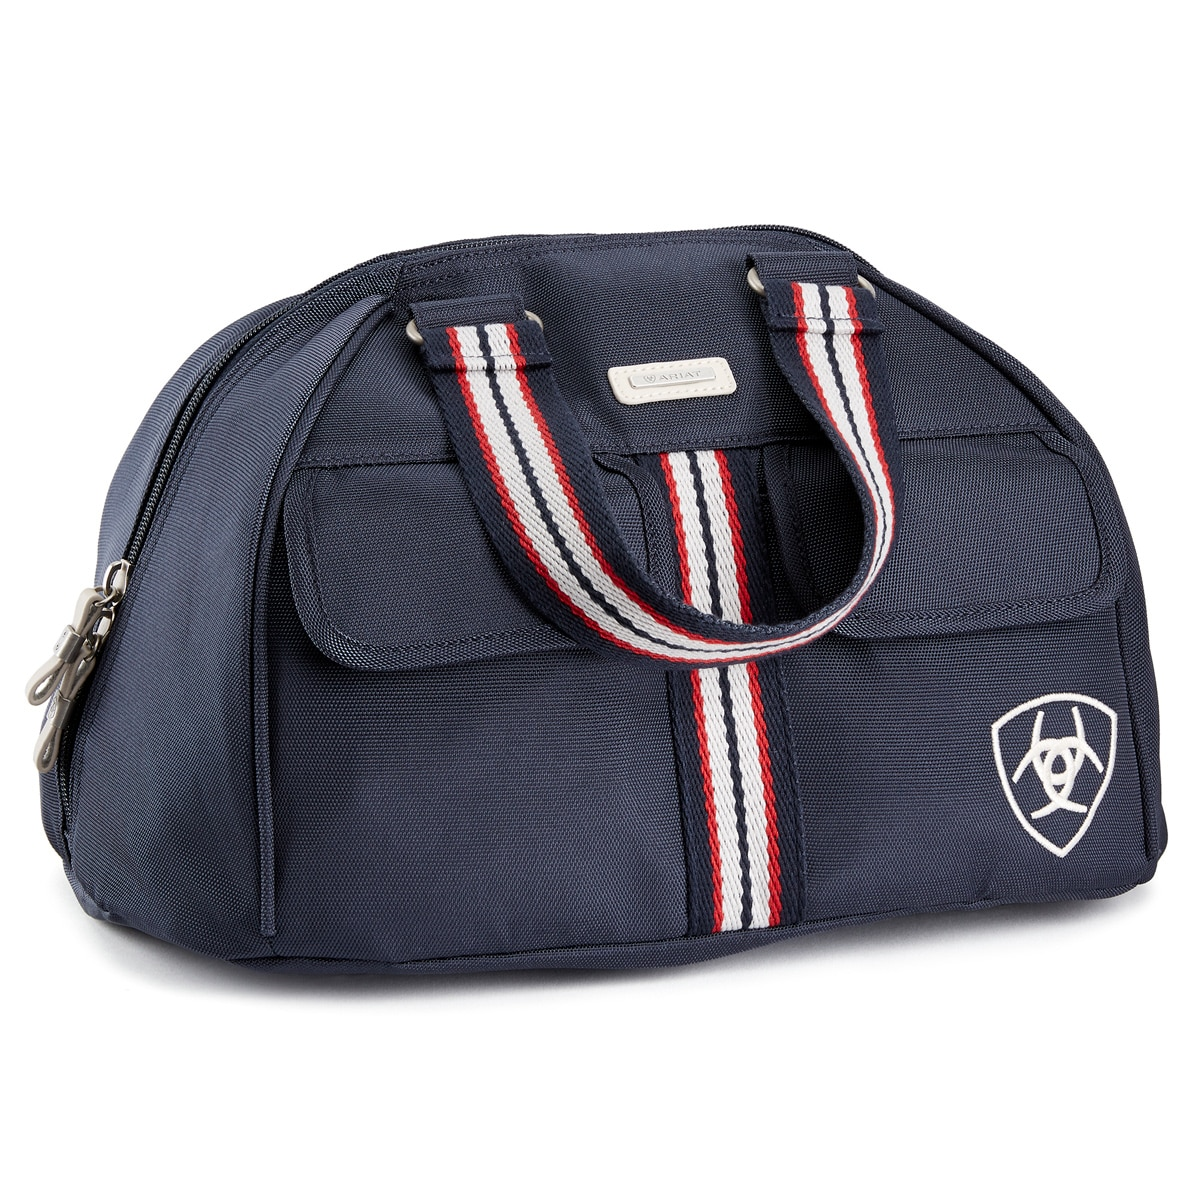 4e999a4af8a7 Ariat Team Helmet Bag